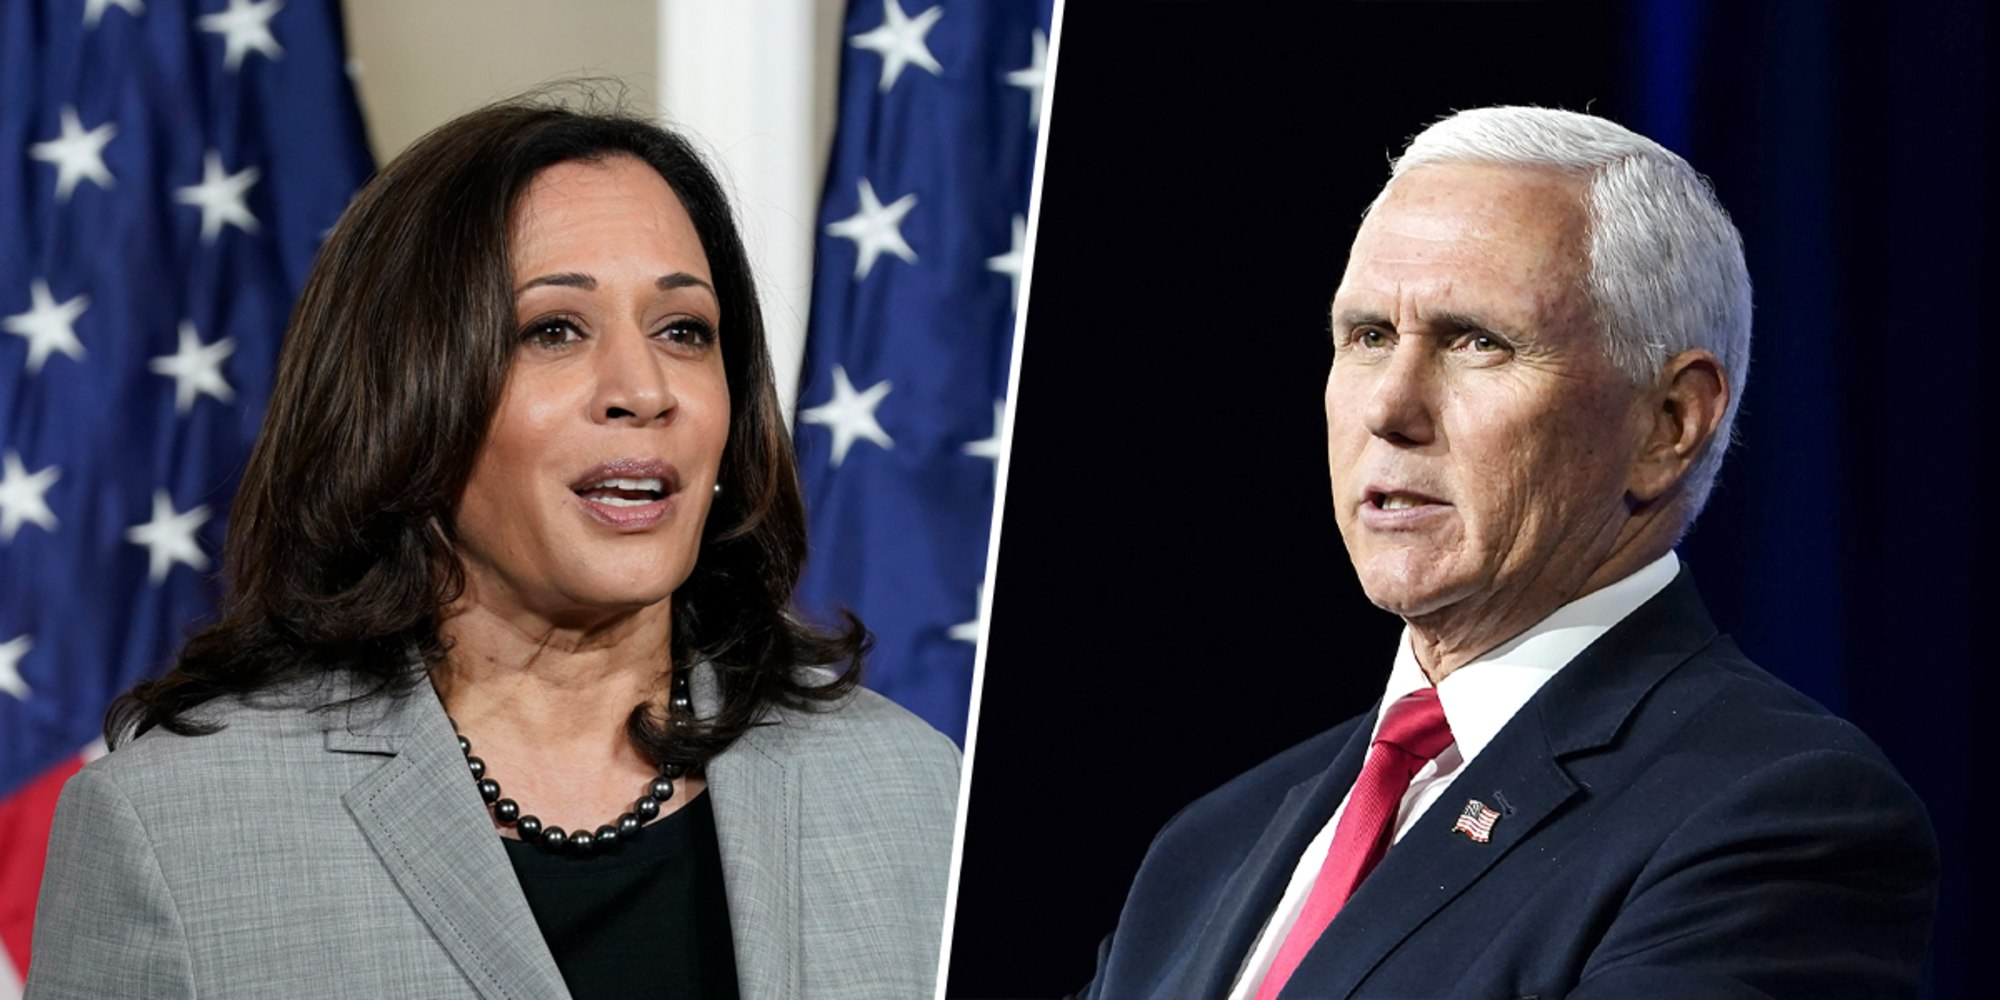 Harris and Pence